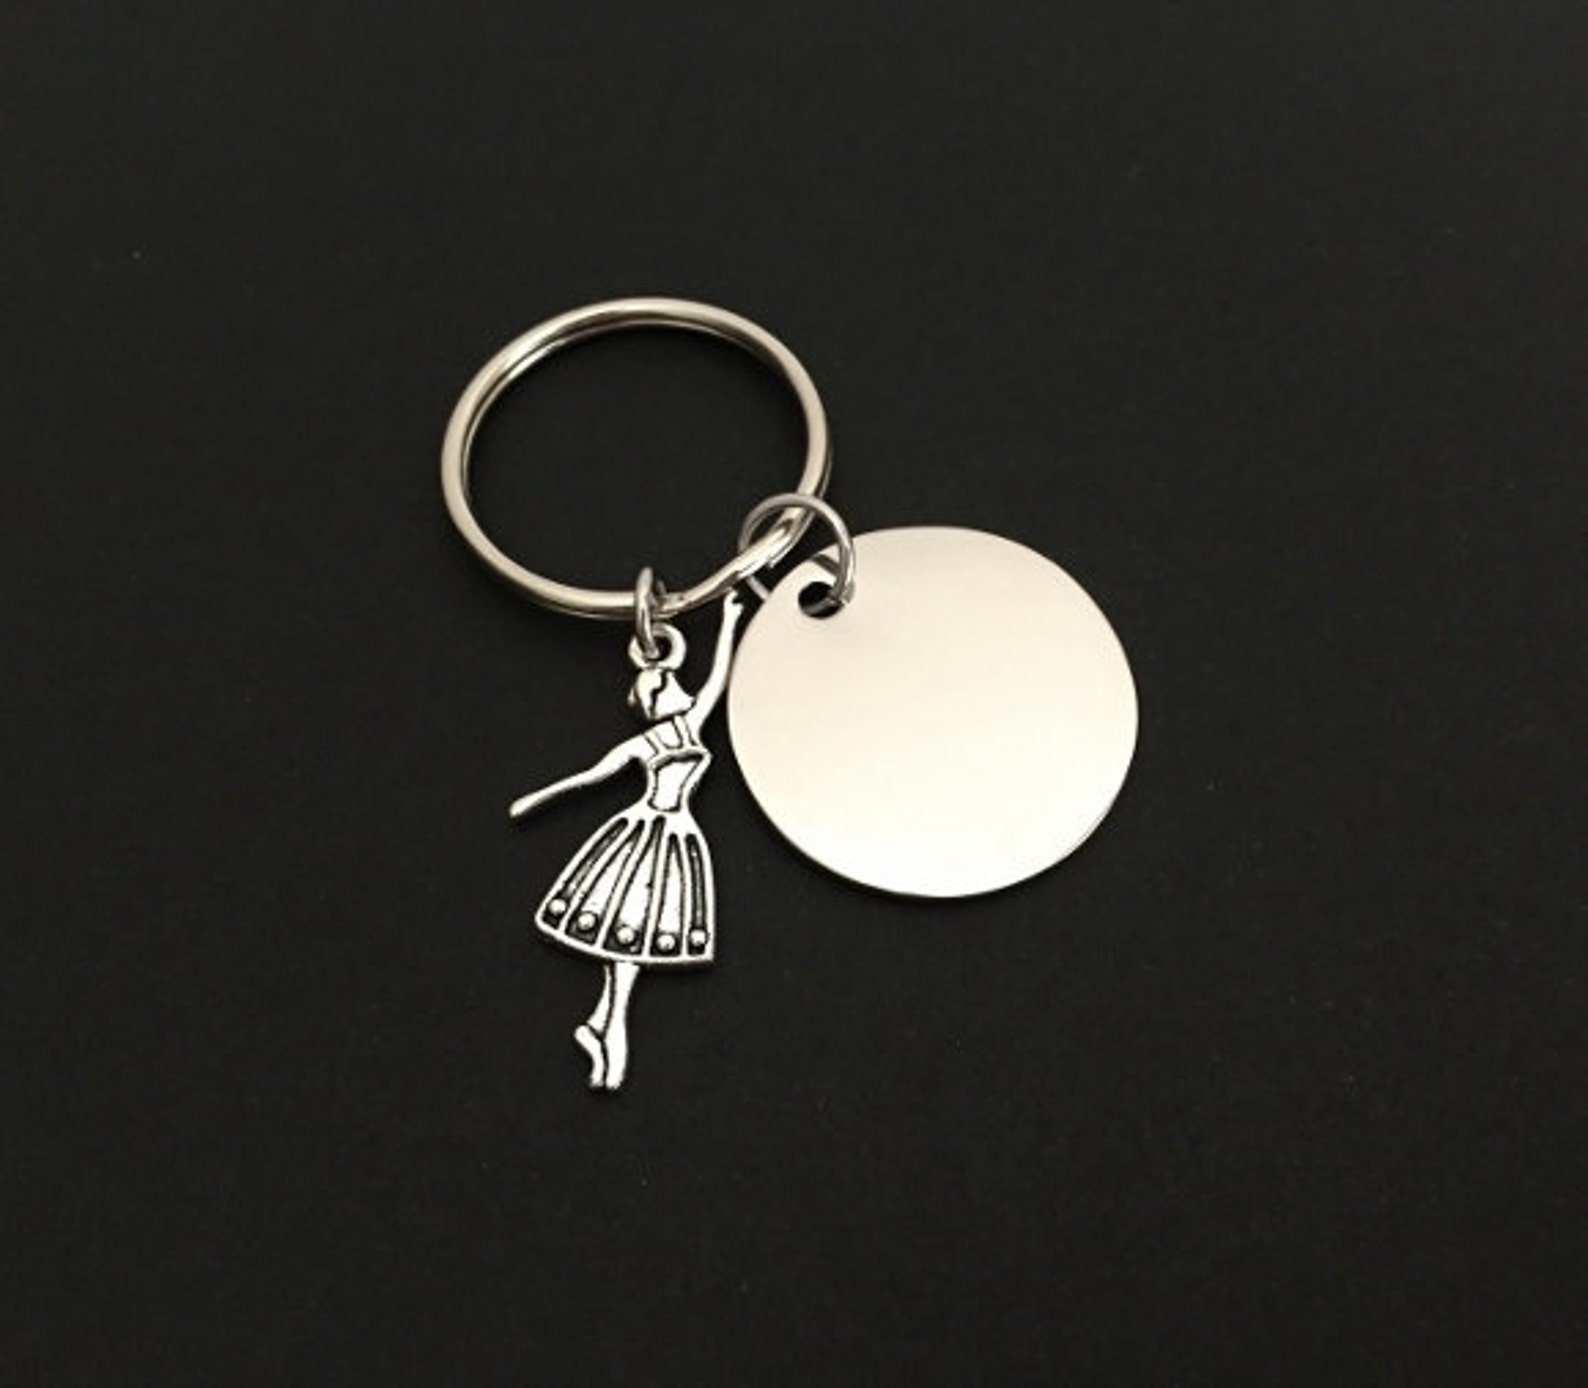 dancer key chain. personalized name key chain. ballet key chain. engraved ballerina key chain. gift for ballerina. gift for girl